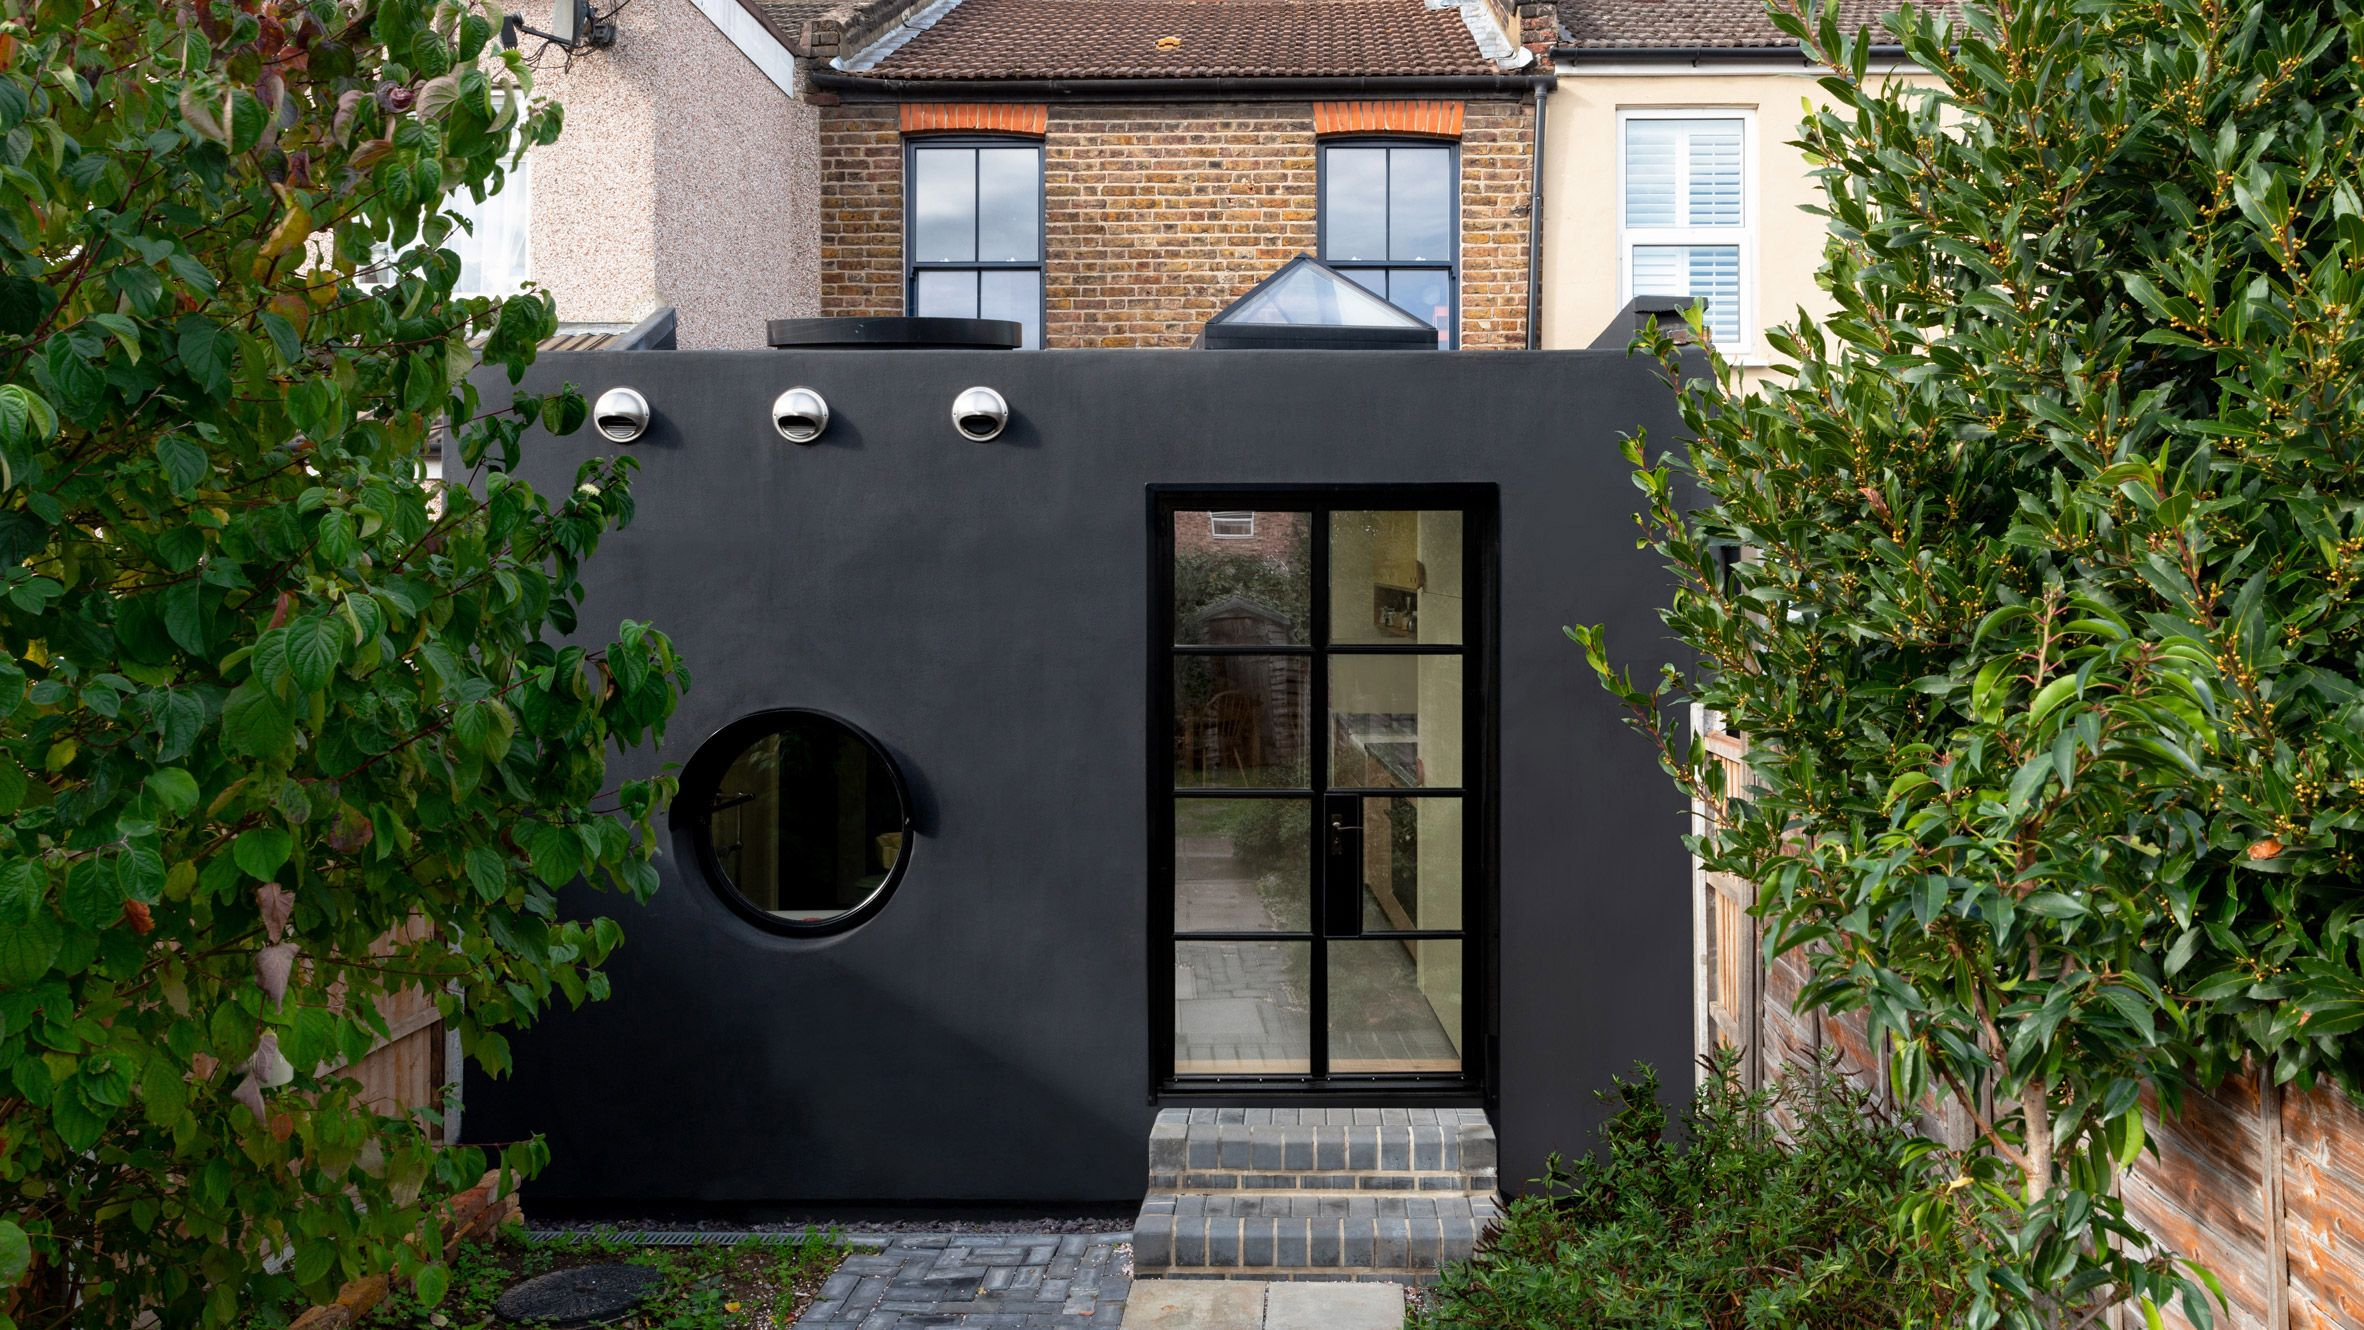 Office S M S Two Faced Janus House Extension Is Coated With Spray On Rubber Https Cstu Io Abce95 Architect House Extensions House Exterior Architect House